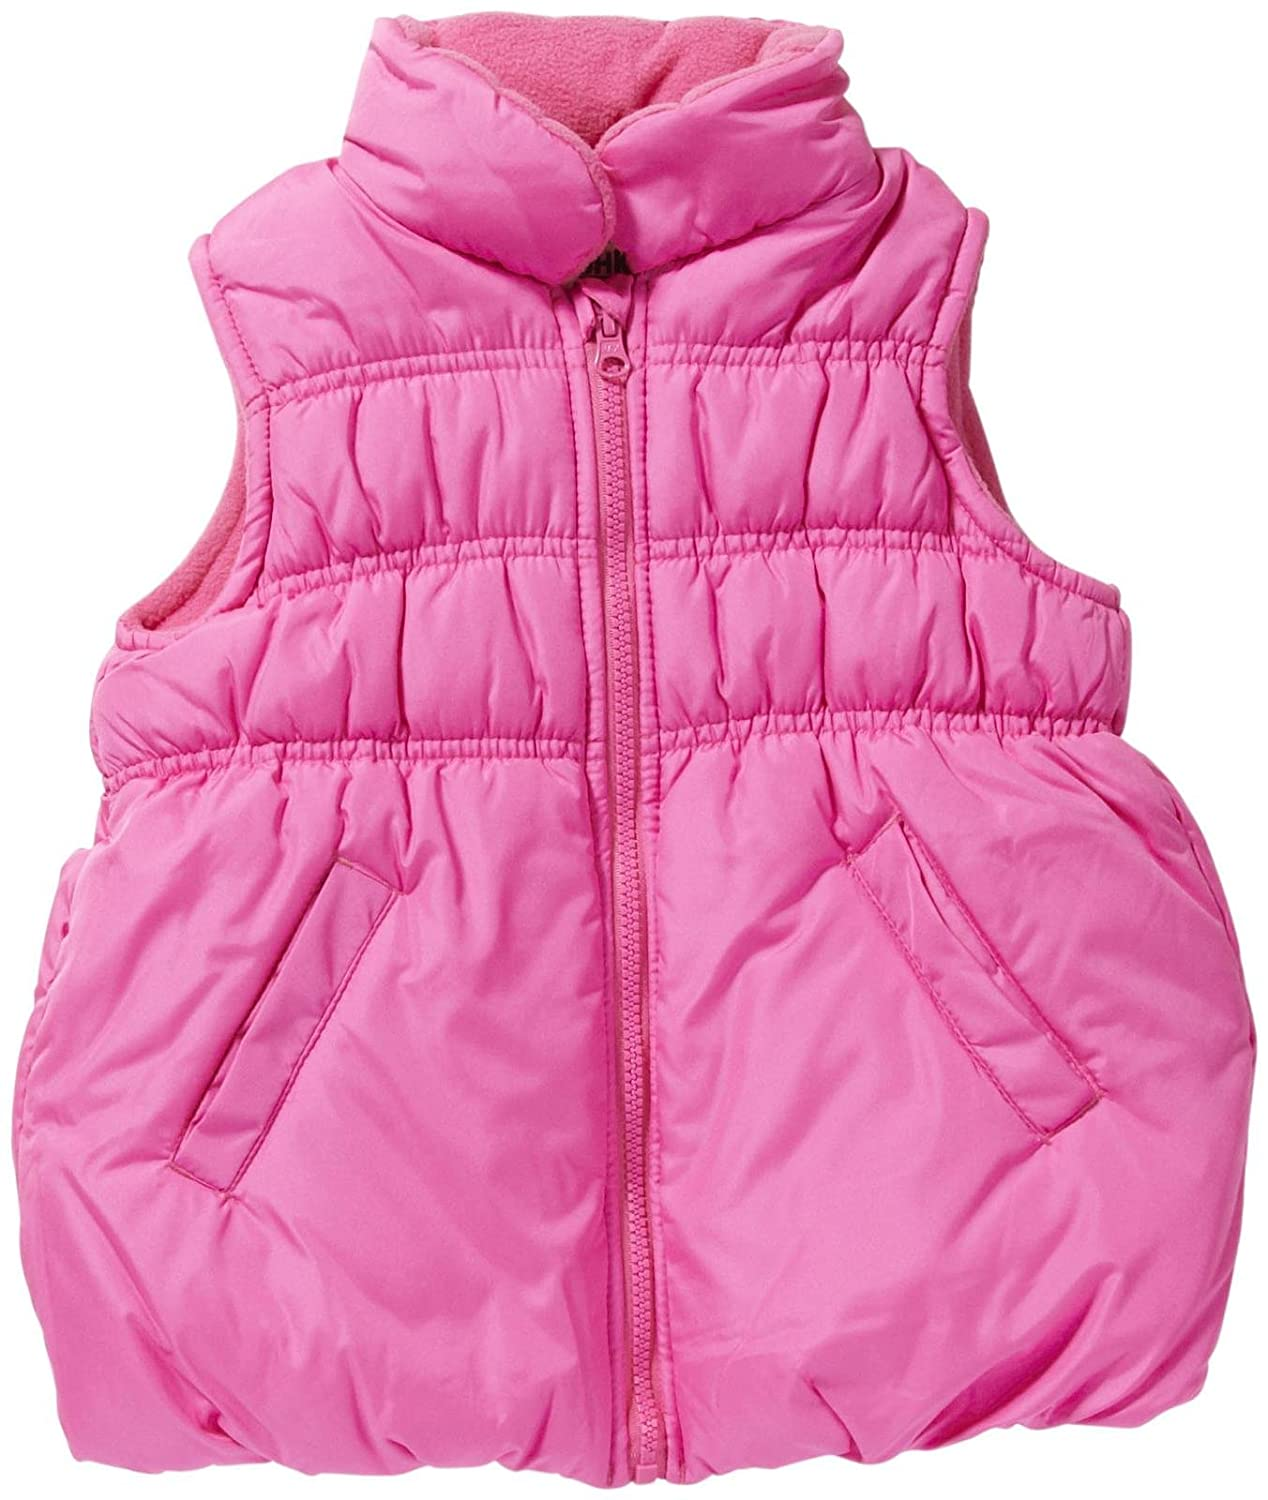 Osh Kosh Little Girls' Solid Bubble Puffer Vest Osh Kosh Girls 2-6x B214933